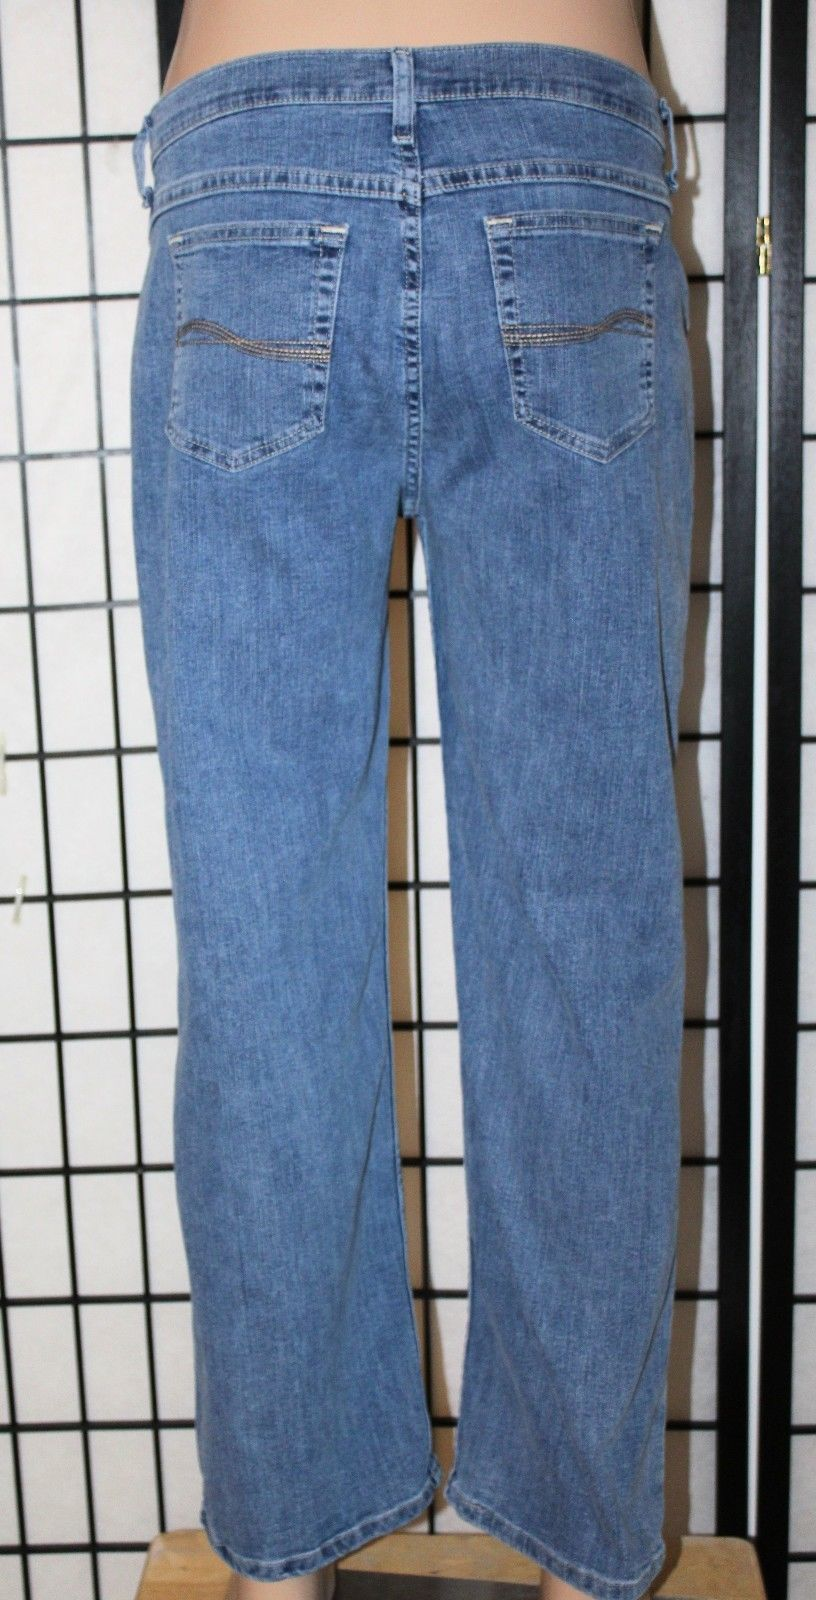 1e1acd56 S l1600. S l1600. Previous. LEE RIDERS Women's Size 16 P Petite Classic Fit  Straight Leg Jeans 29